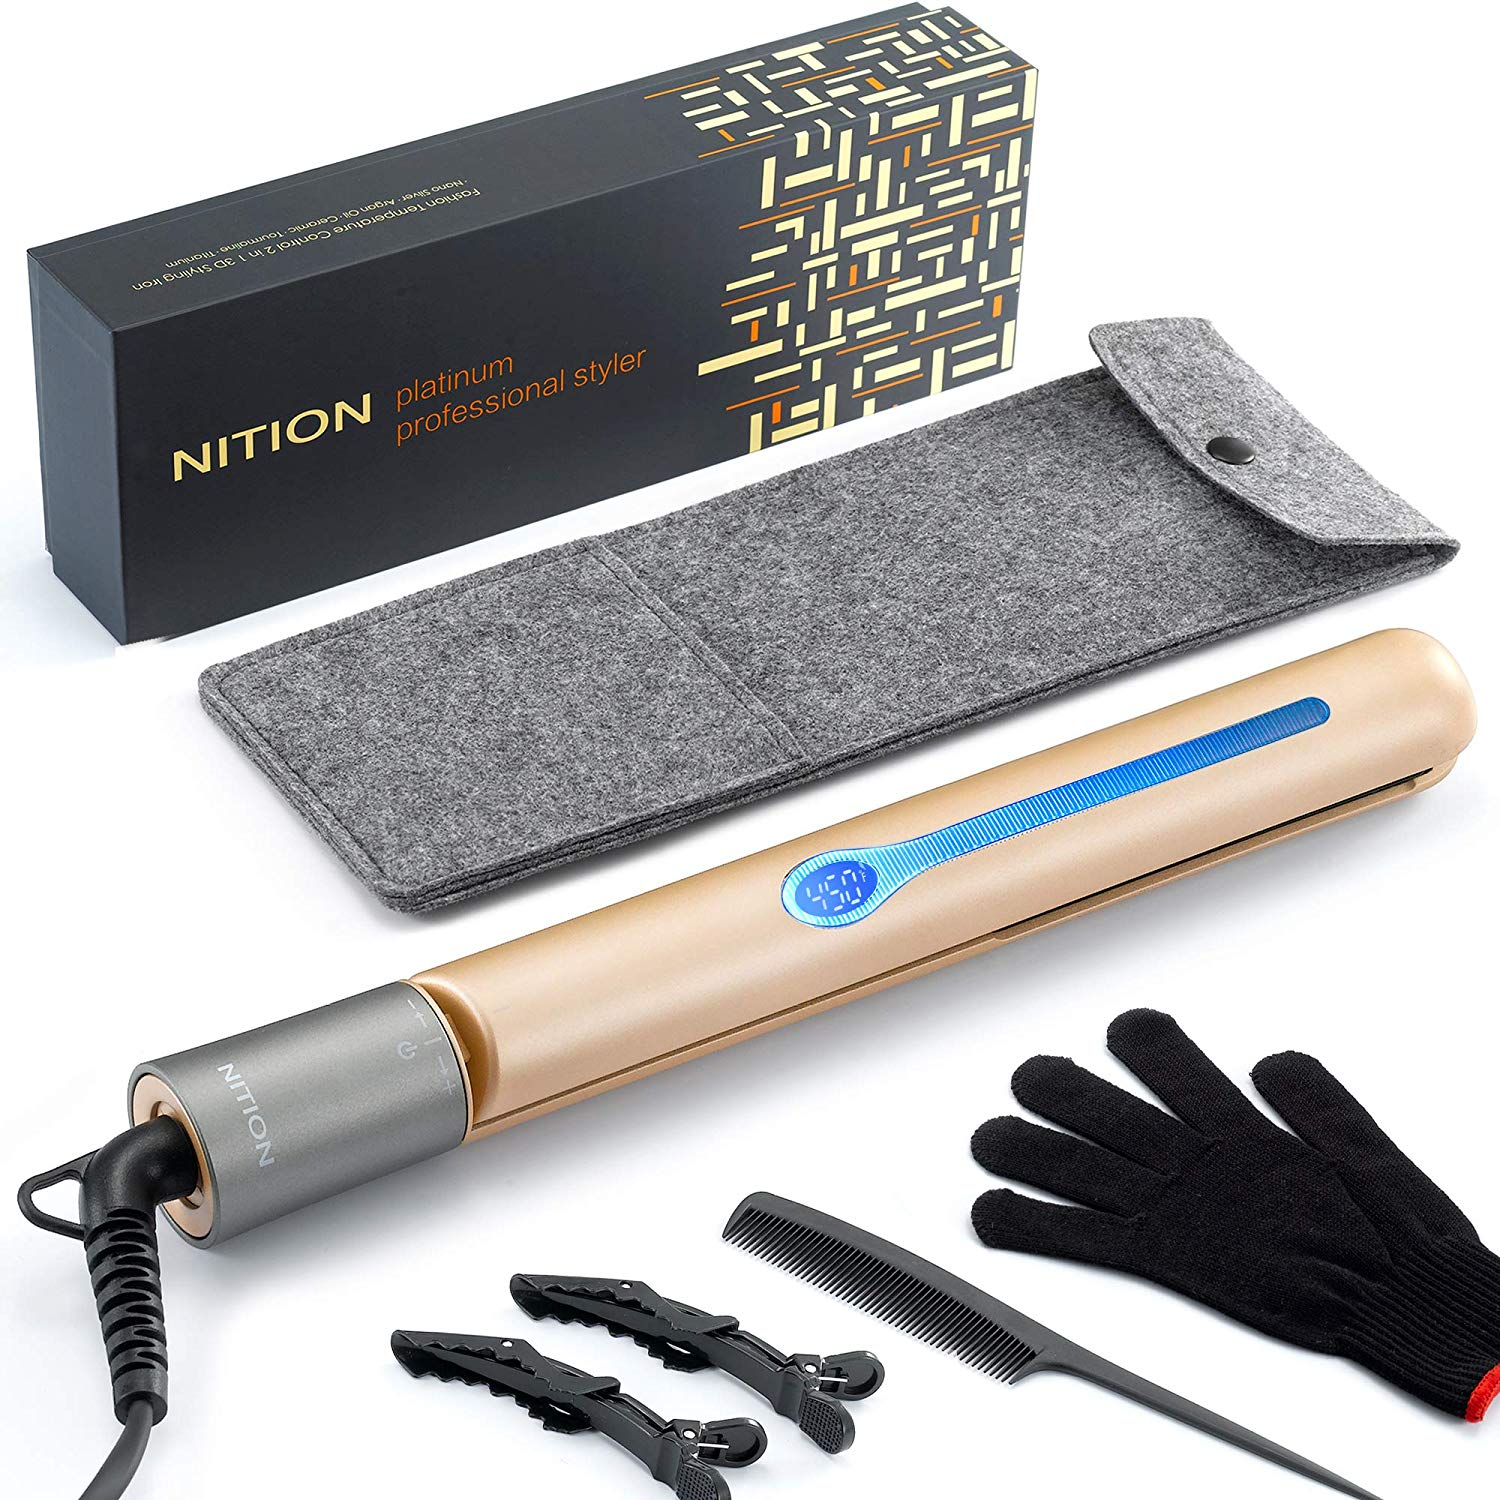 NITION Ceramic Hair Straightener Flat Iron